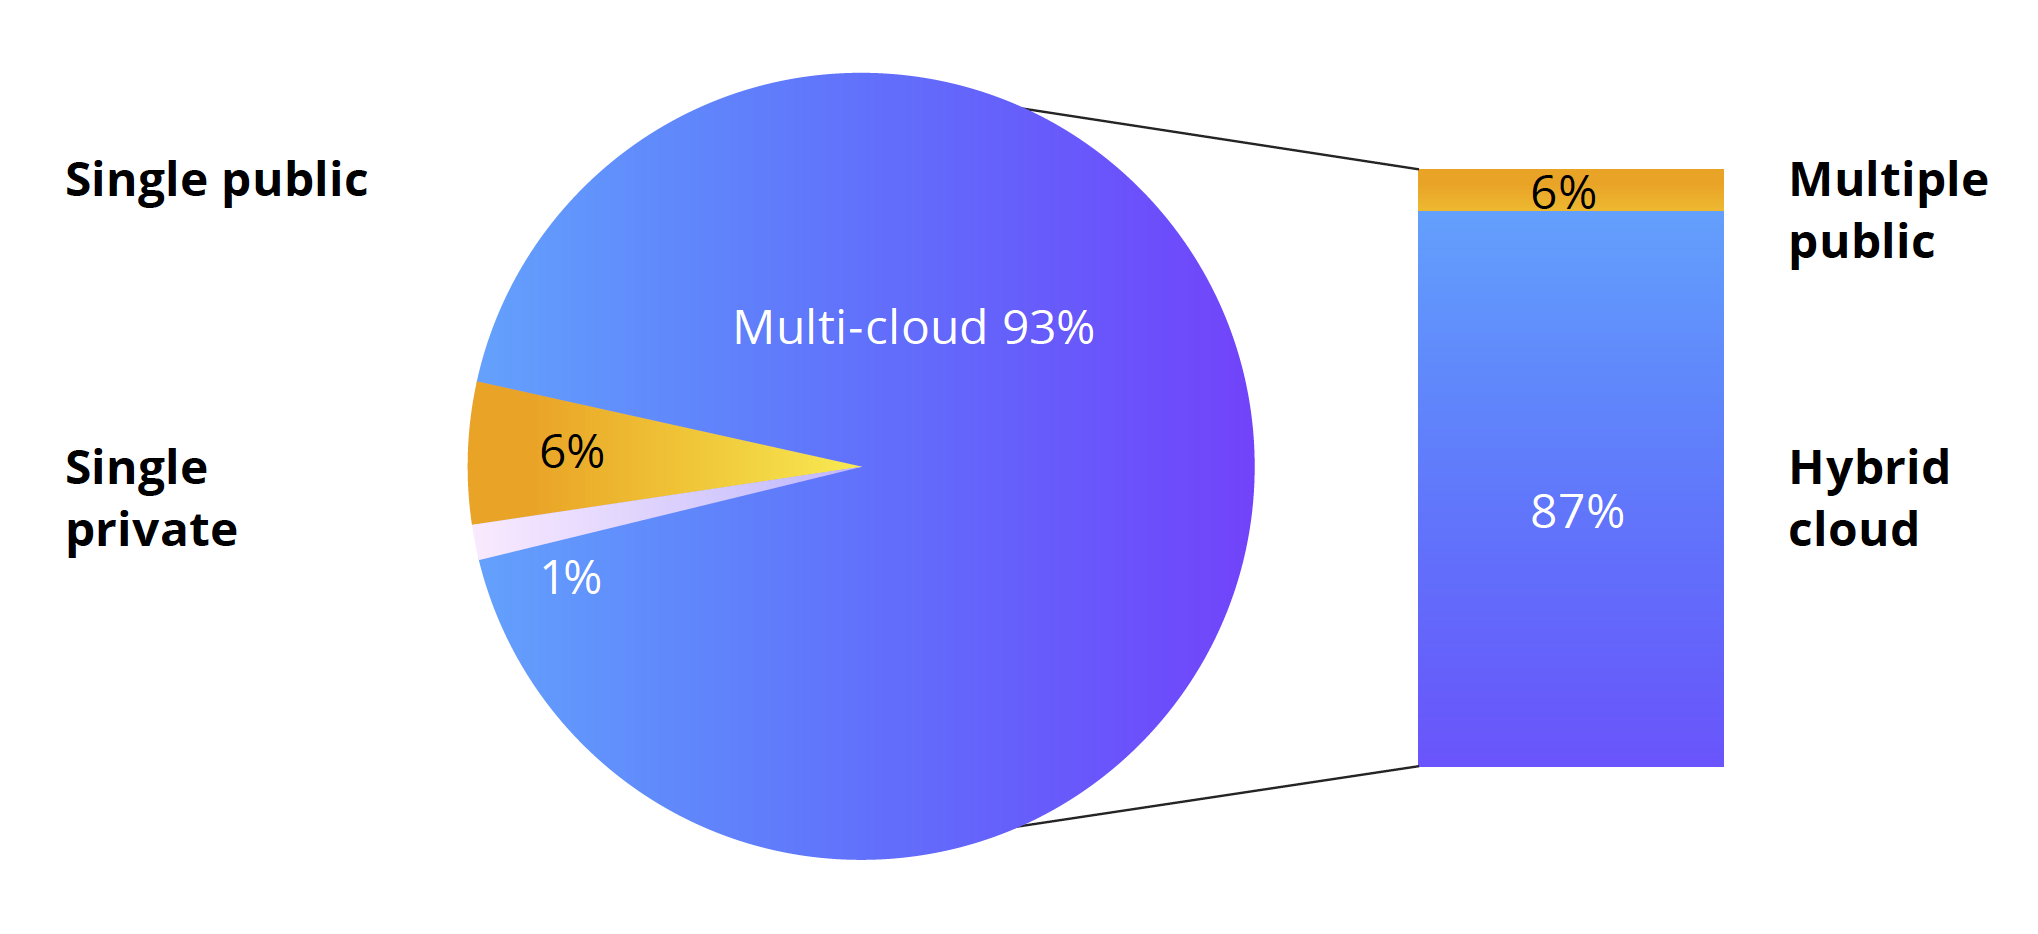 Enterprises embrace the hybrid and multi-cloud. Source: State of the Cloud 2020 report.